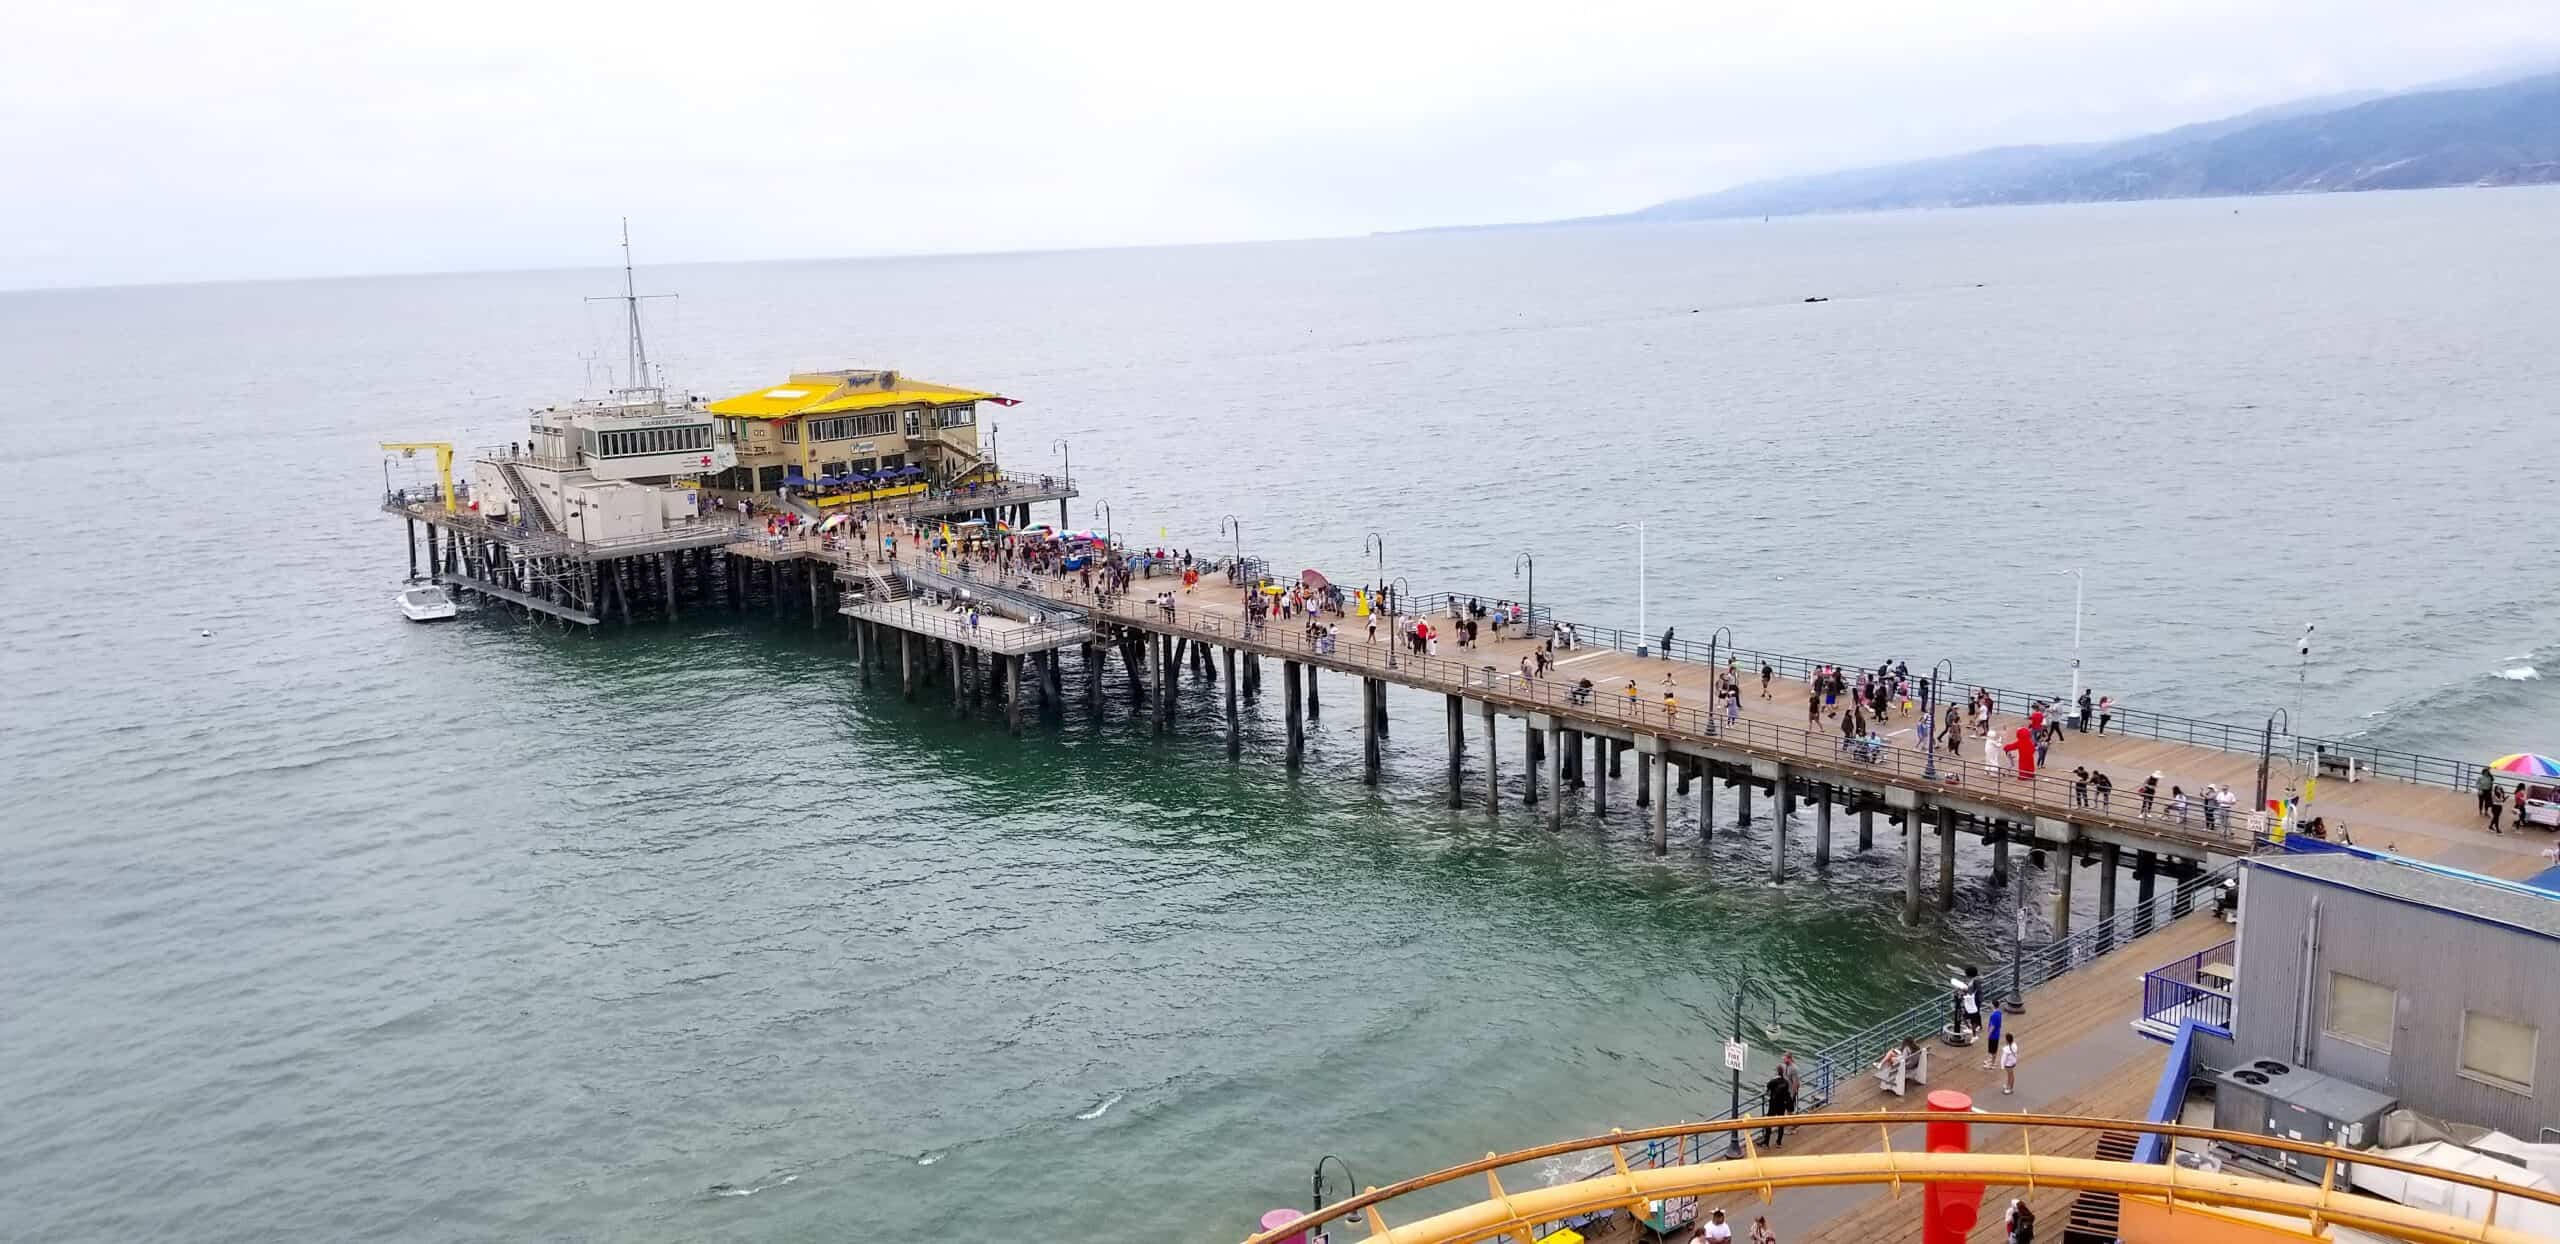 Santa Monica Pier from the ferris wheel